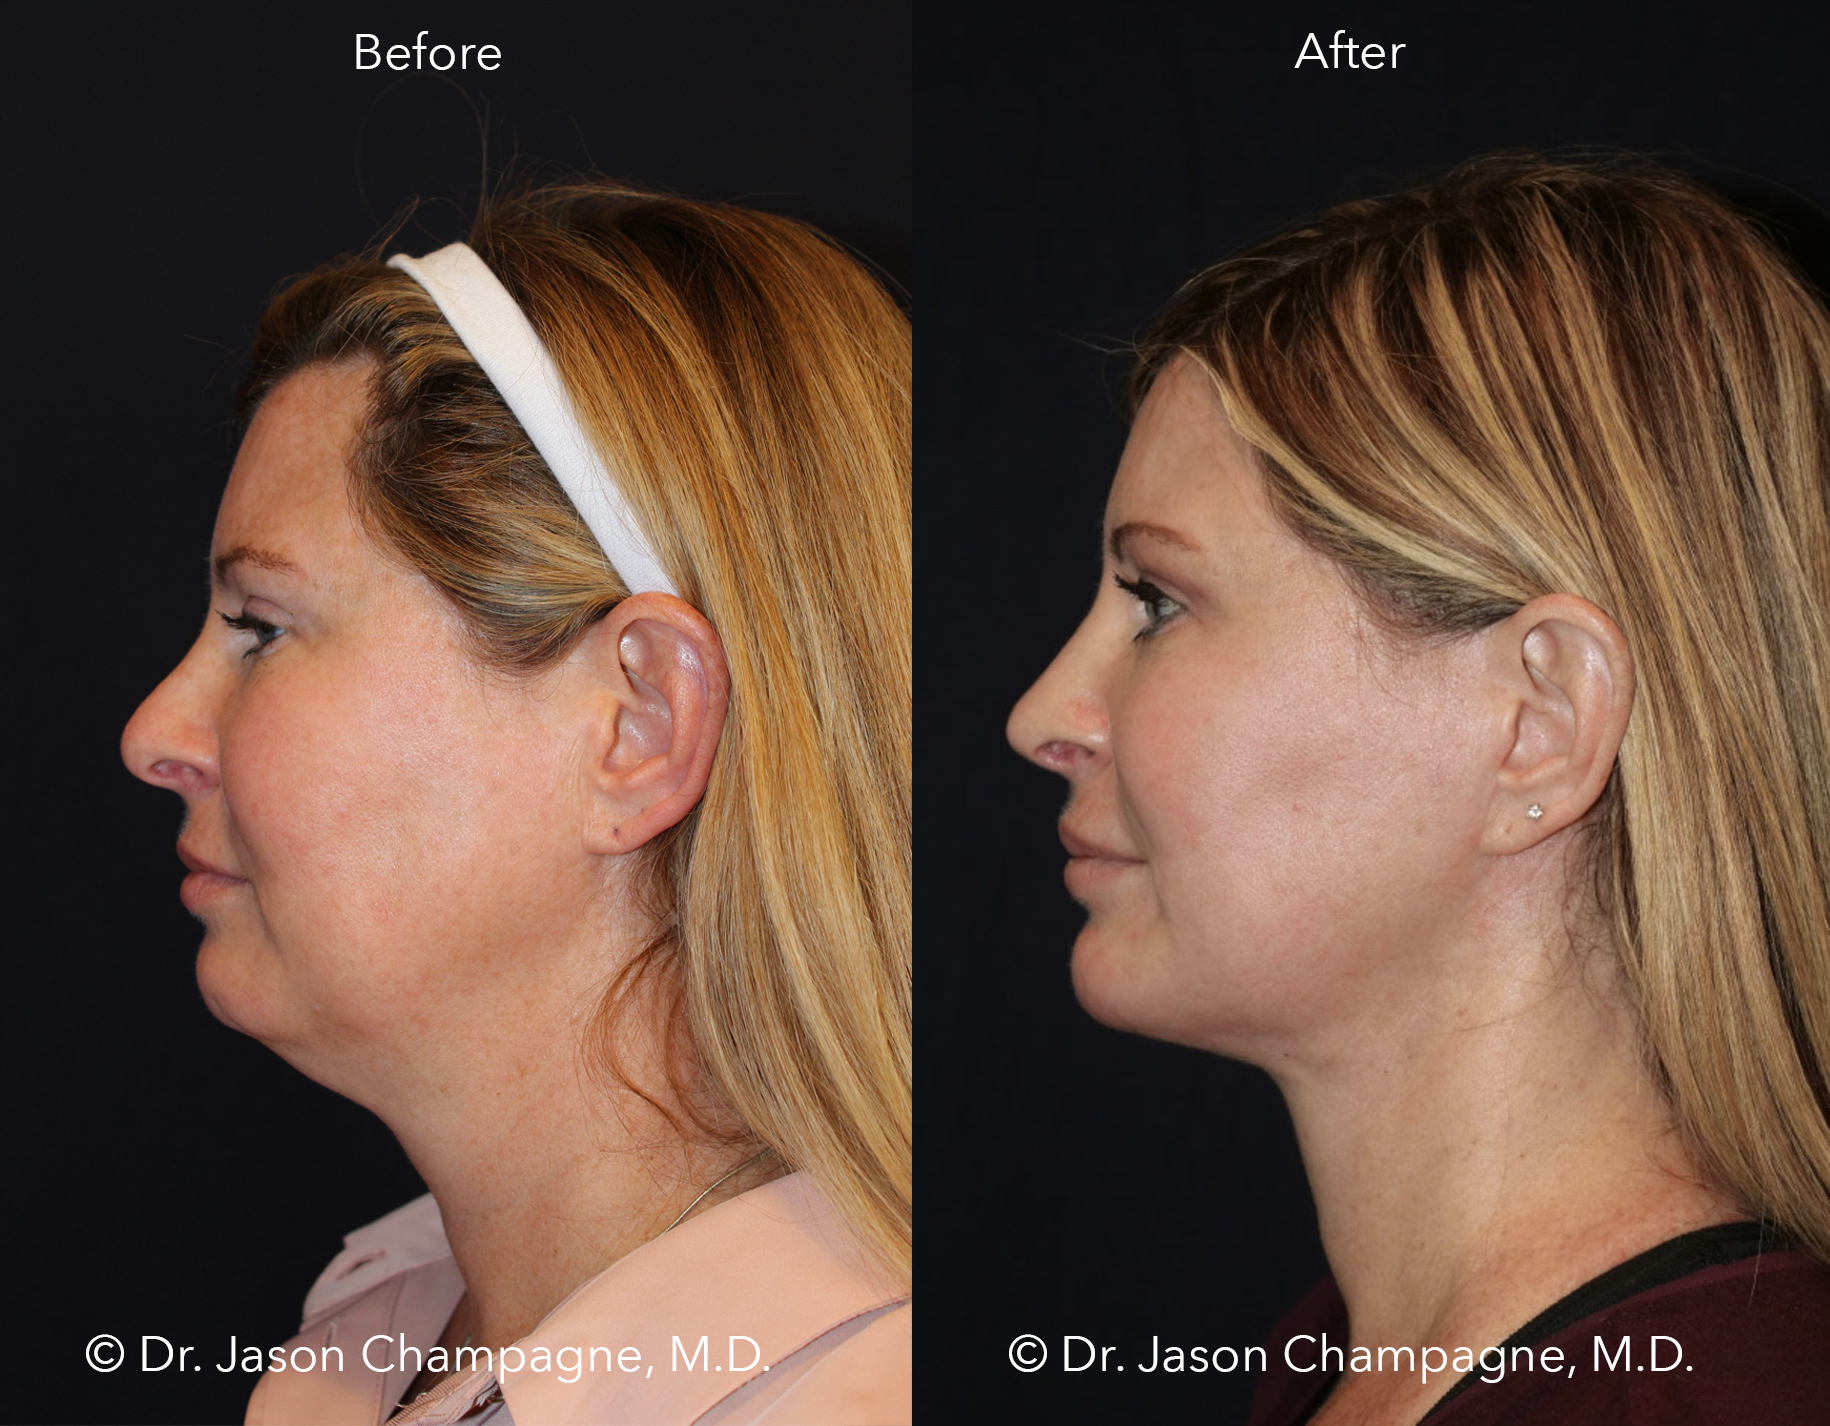 Dr-Jason-Champagne-Neck-Liposuction-Chin-Implant-Neck-Lift-Face-Lift-Rhinoplasty-Advanced-Radio-Frequency-Skin-Tightening-CO2-Laser-Skin-Resurfacing-Buccal-Fat-Excision-Before-and-After-Profile